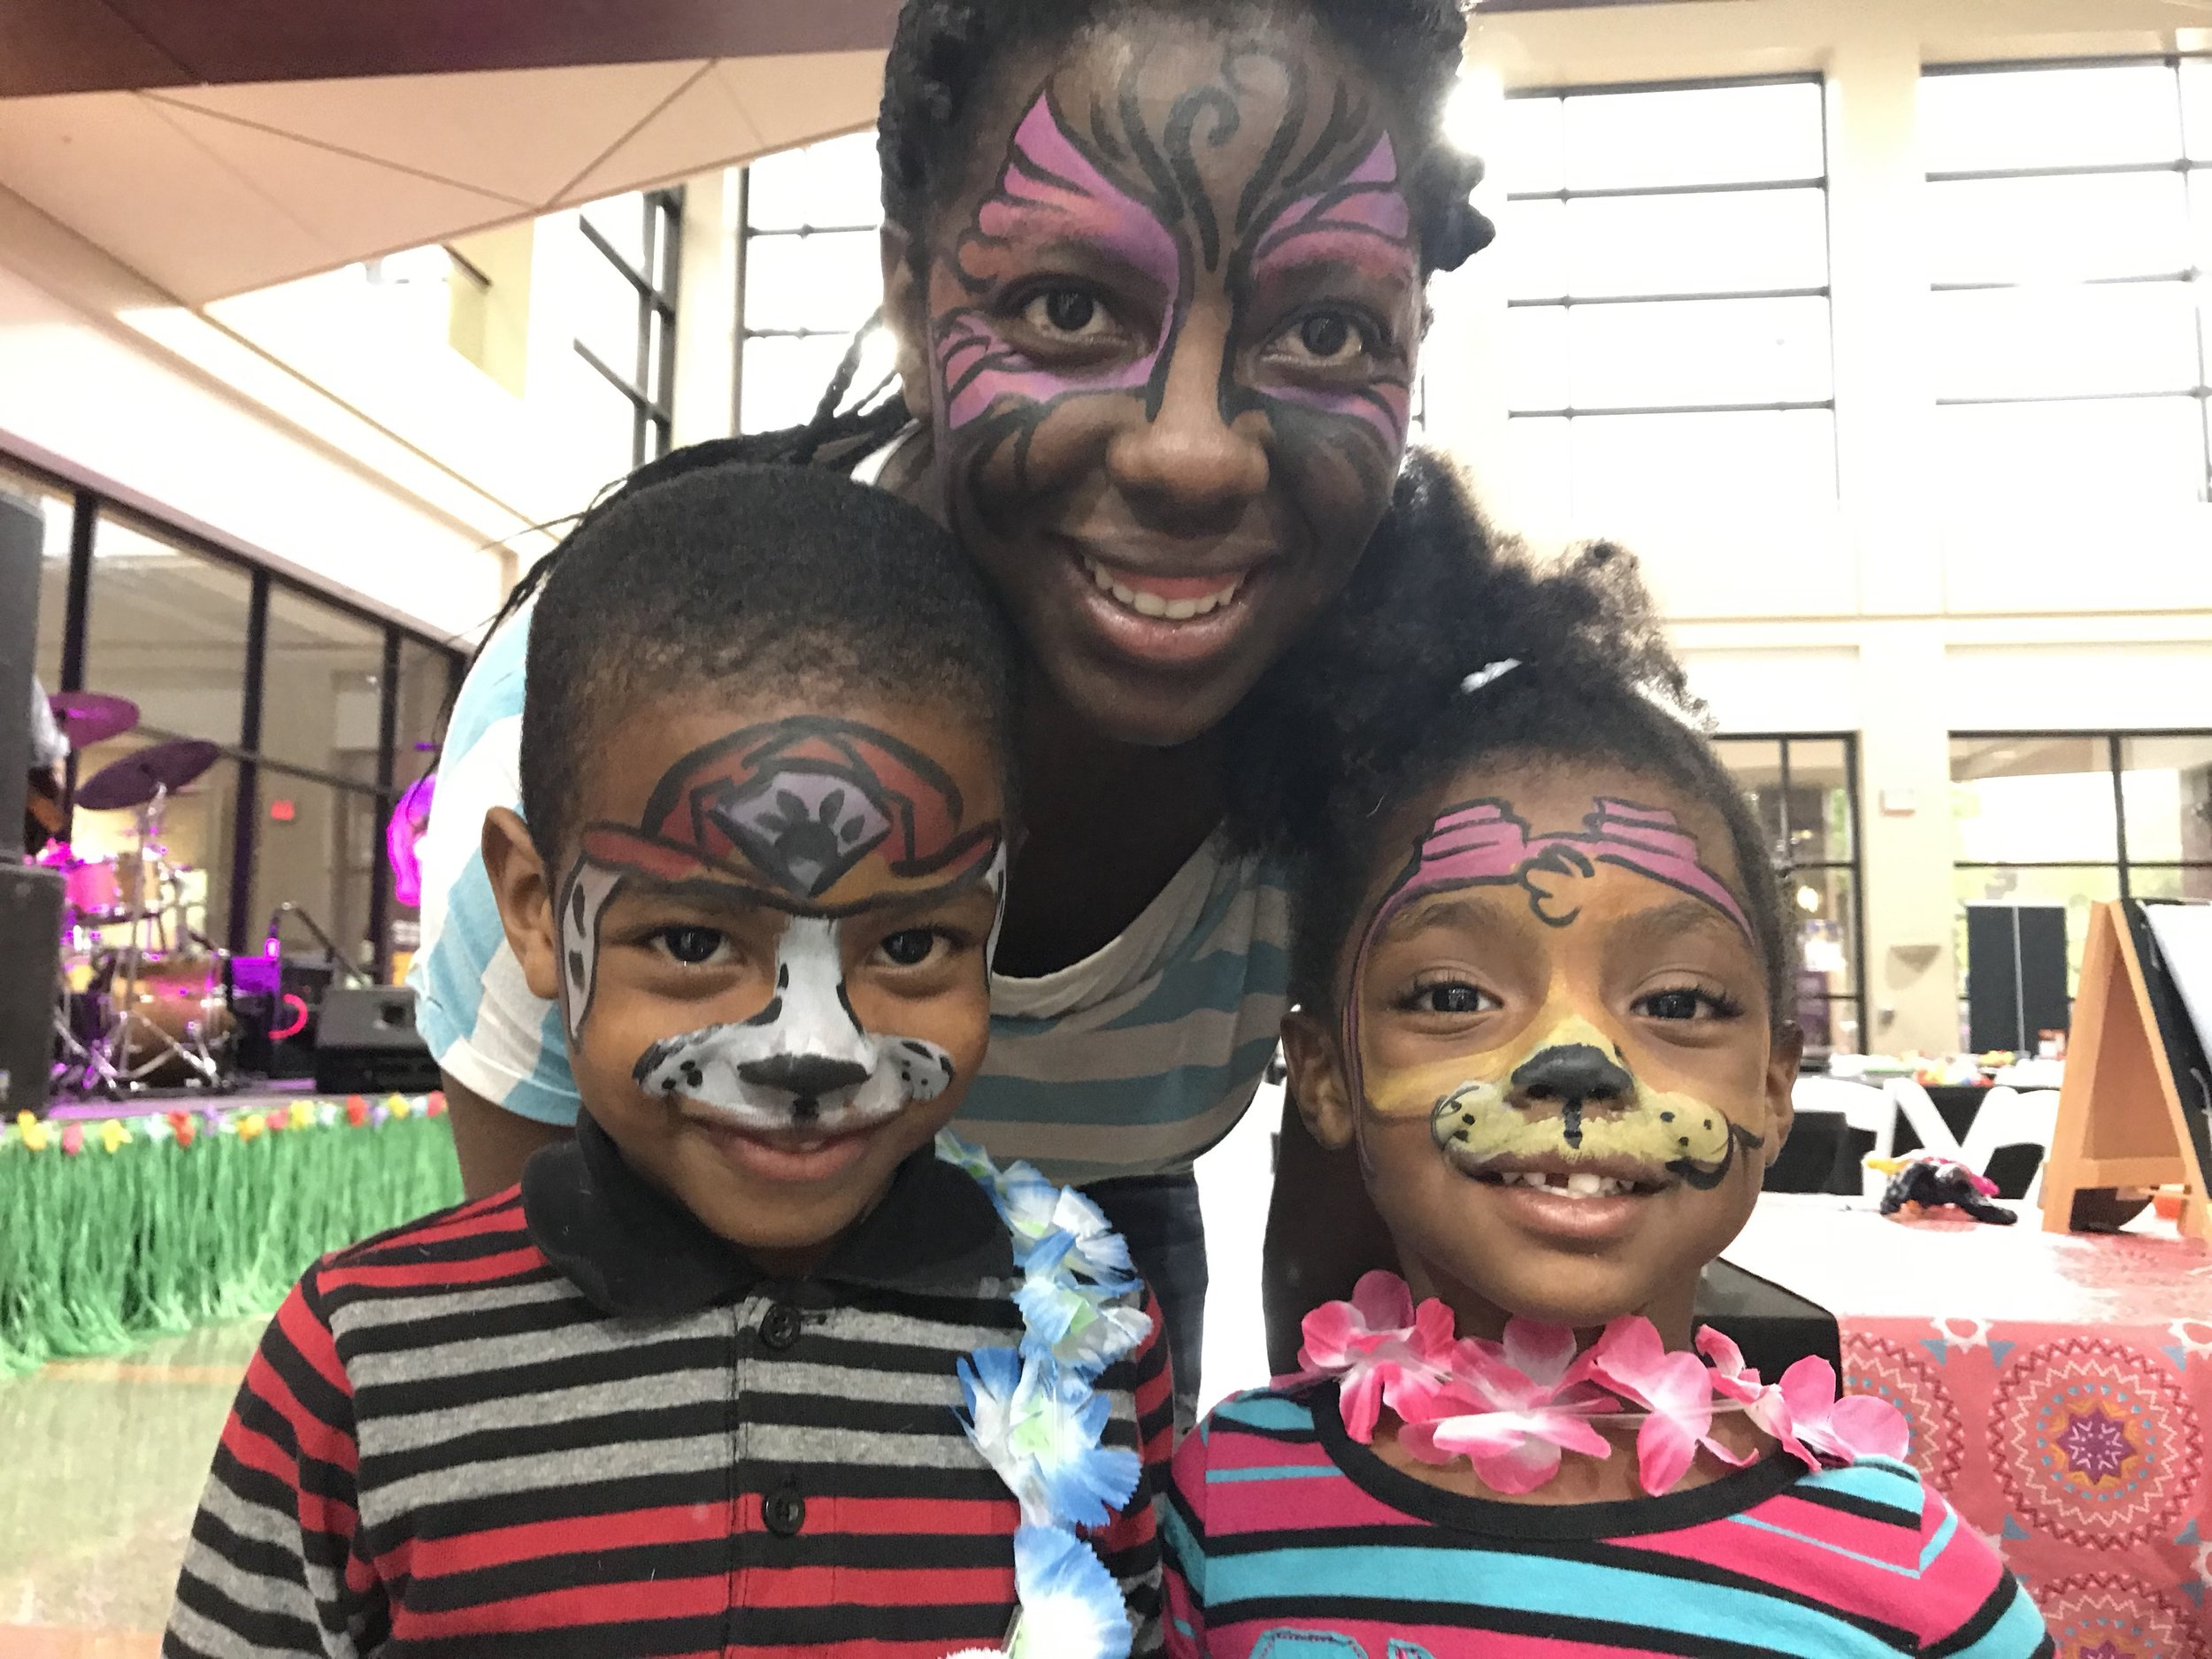 Kid's Birthday Parties & other mini events - for 10-50 kid eventscan paint 15-20 kids/hr$30/hr includes1 professional face painterhigh quality paint and suppliestable and chairs if not provided$25 travel fee if party is outside of Macon within 100miles1hr minimum